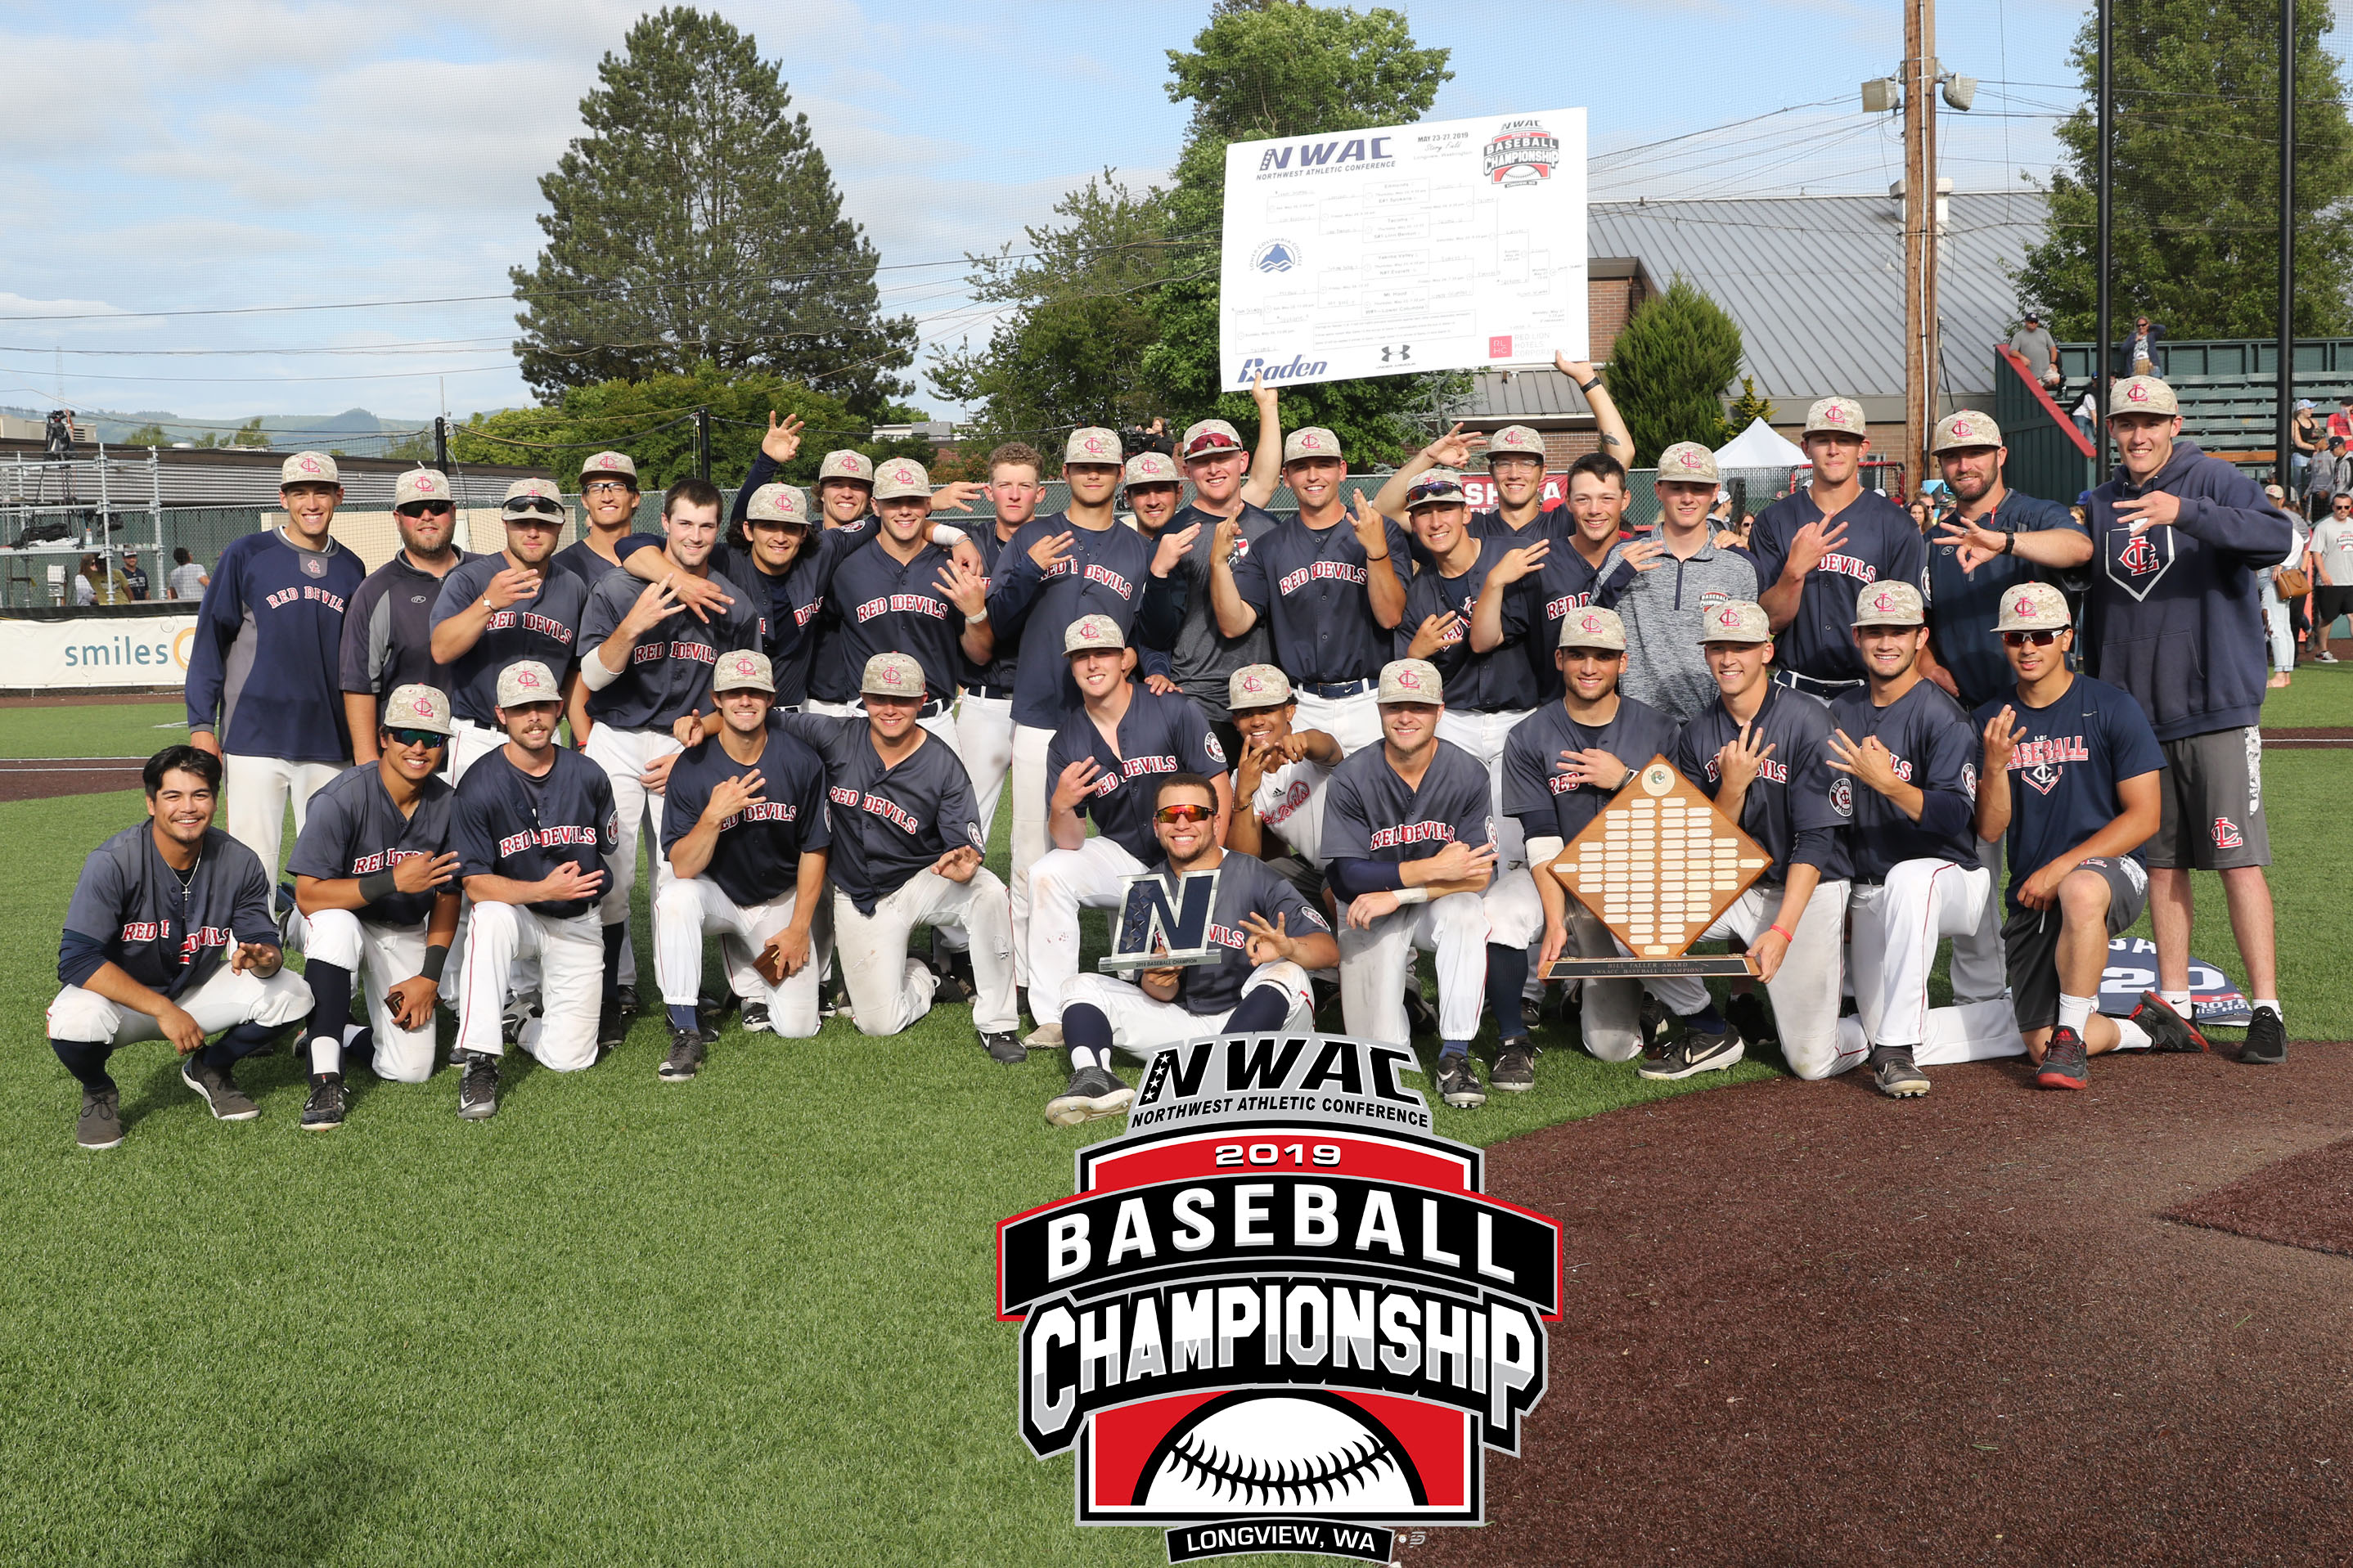 Photo of Lower Columbia team with championship hardward